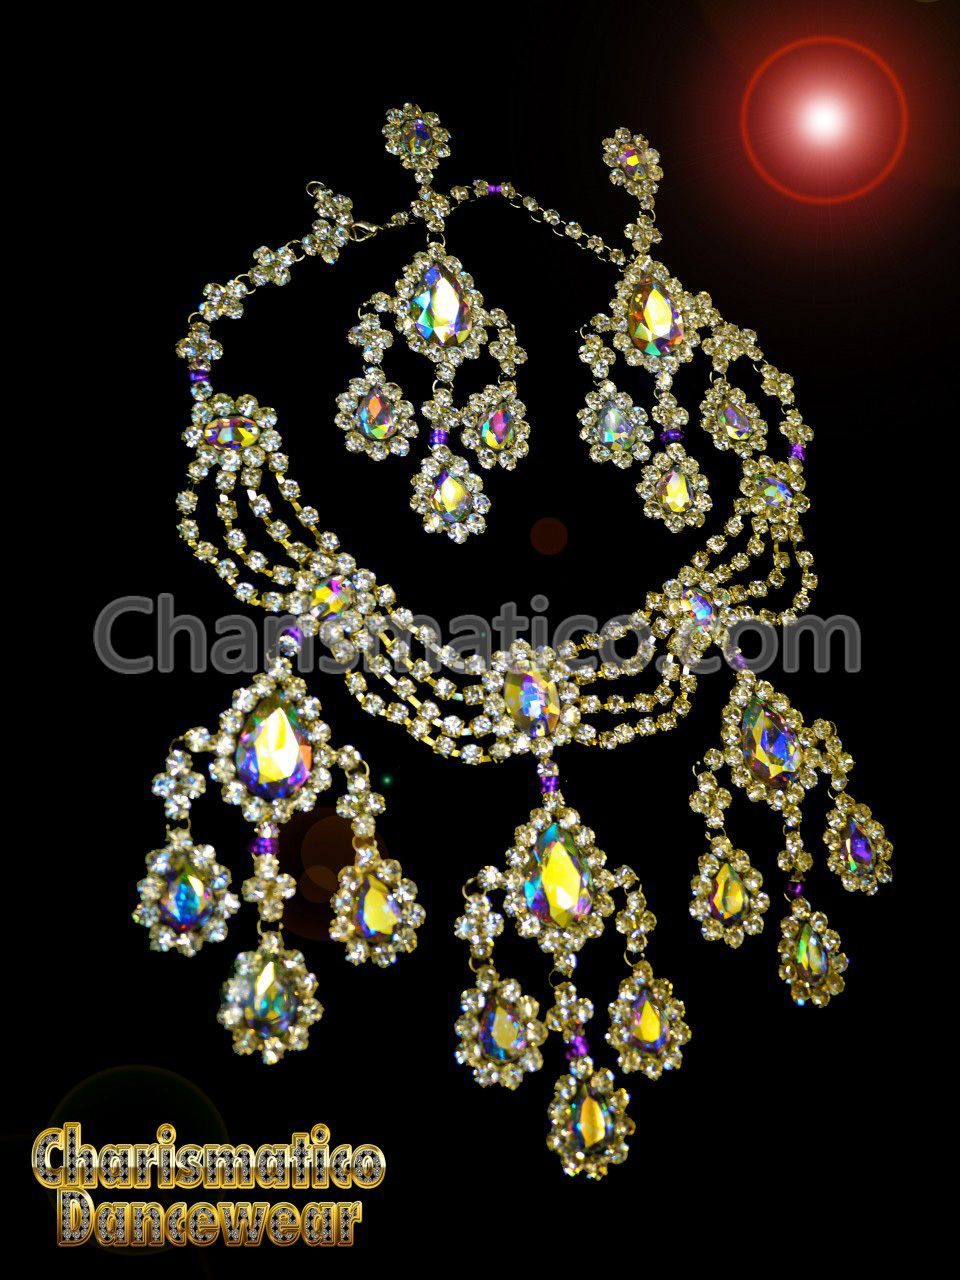 Divine Divas Pageant Jewelry Necklace And Earrings Ab